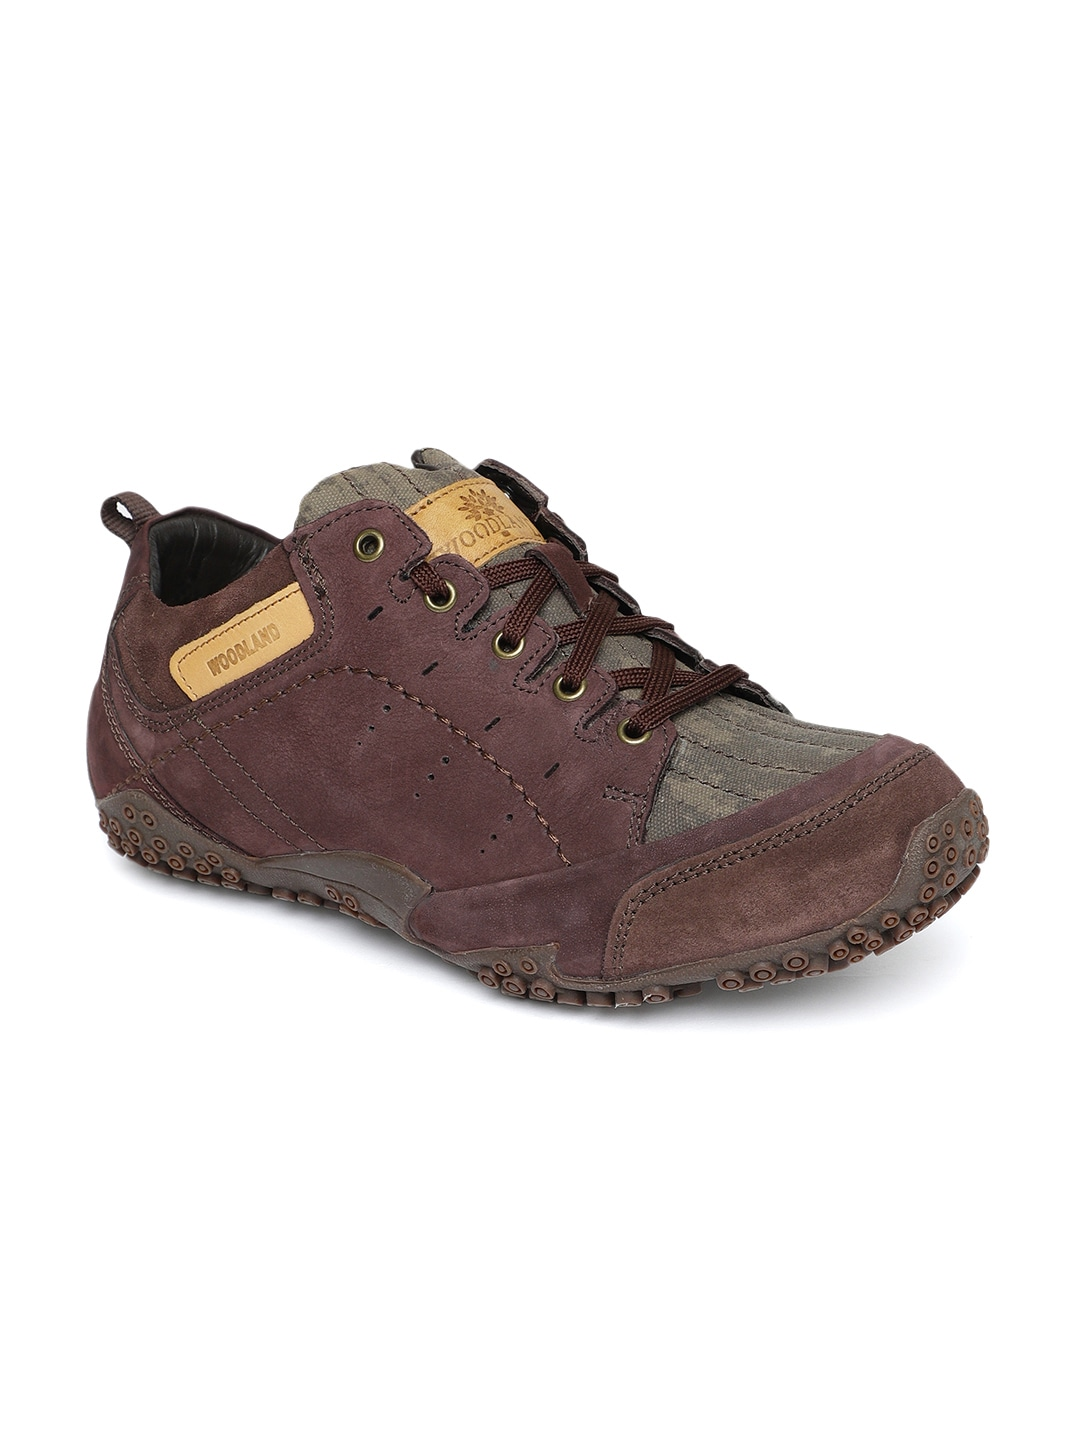 4efd9f282f9c Woodland Shoes - Buy Genuine Woodland Shoes Online At Best Price - Myntra